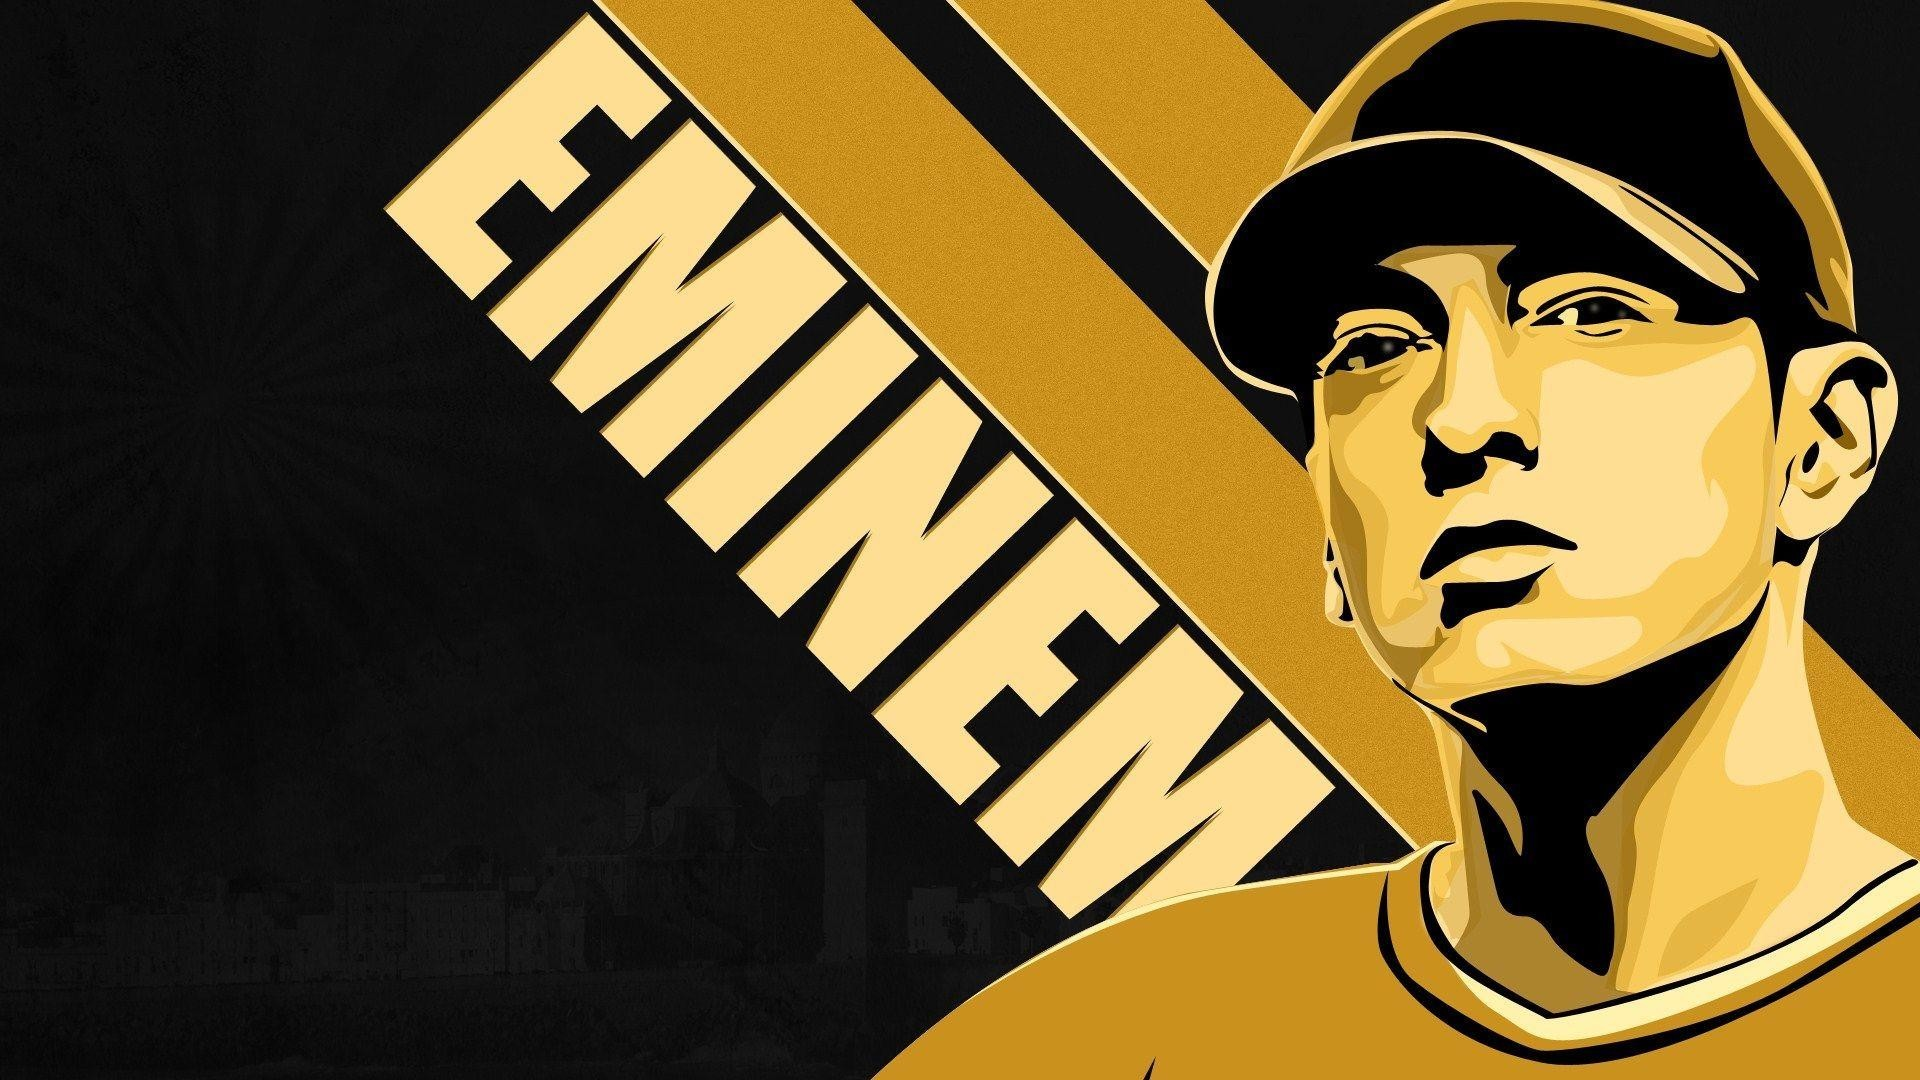 Eminem Wallpapers 2018 74 Pictures